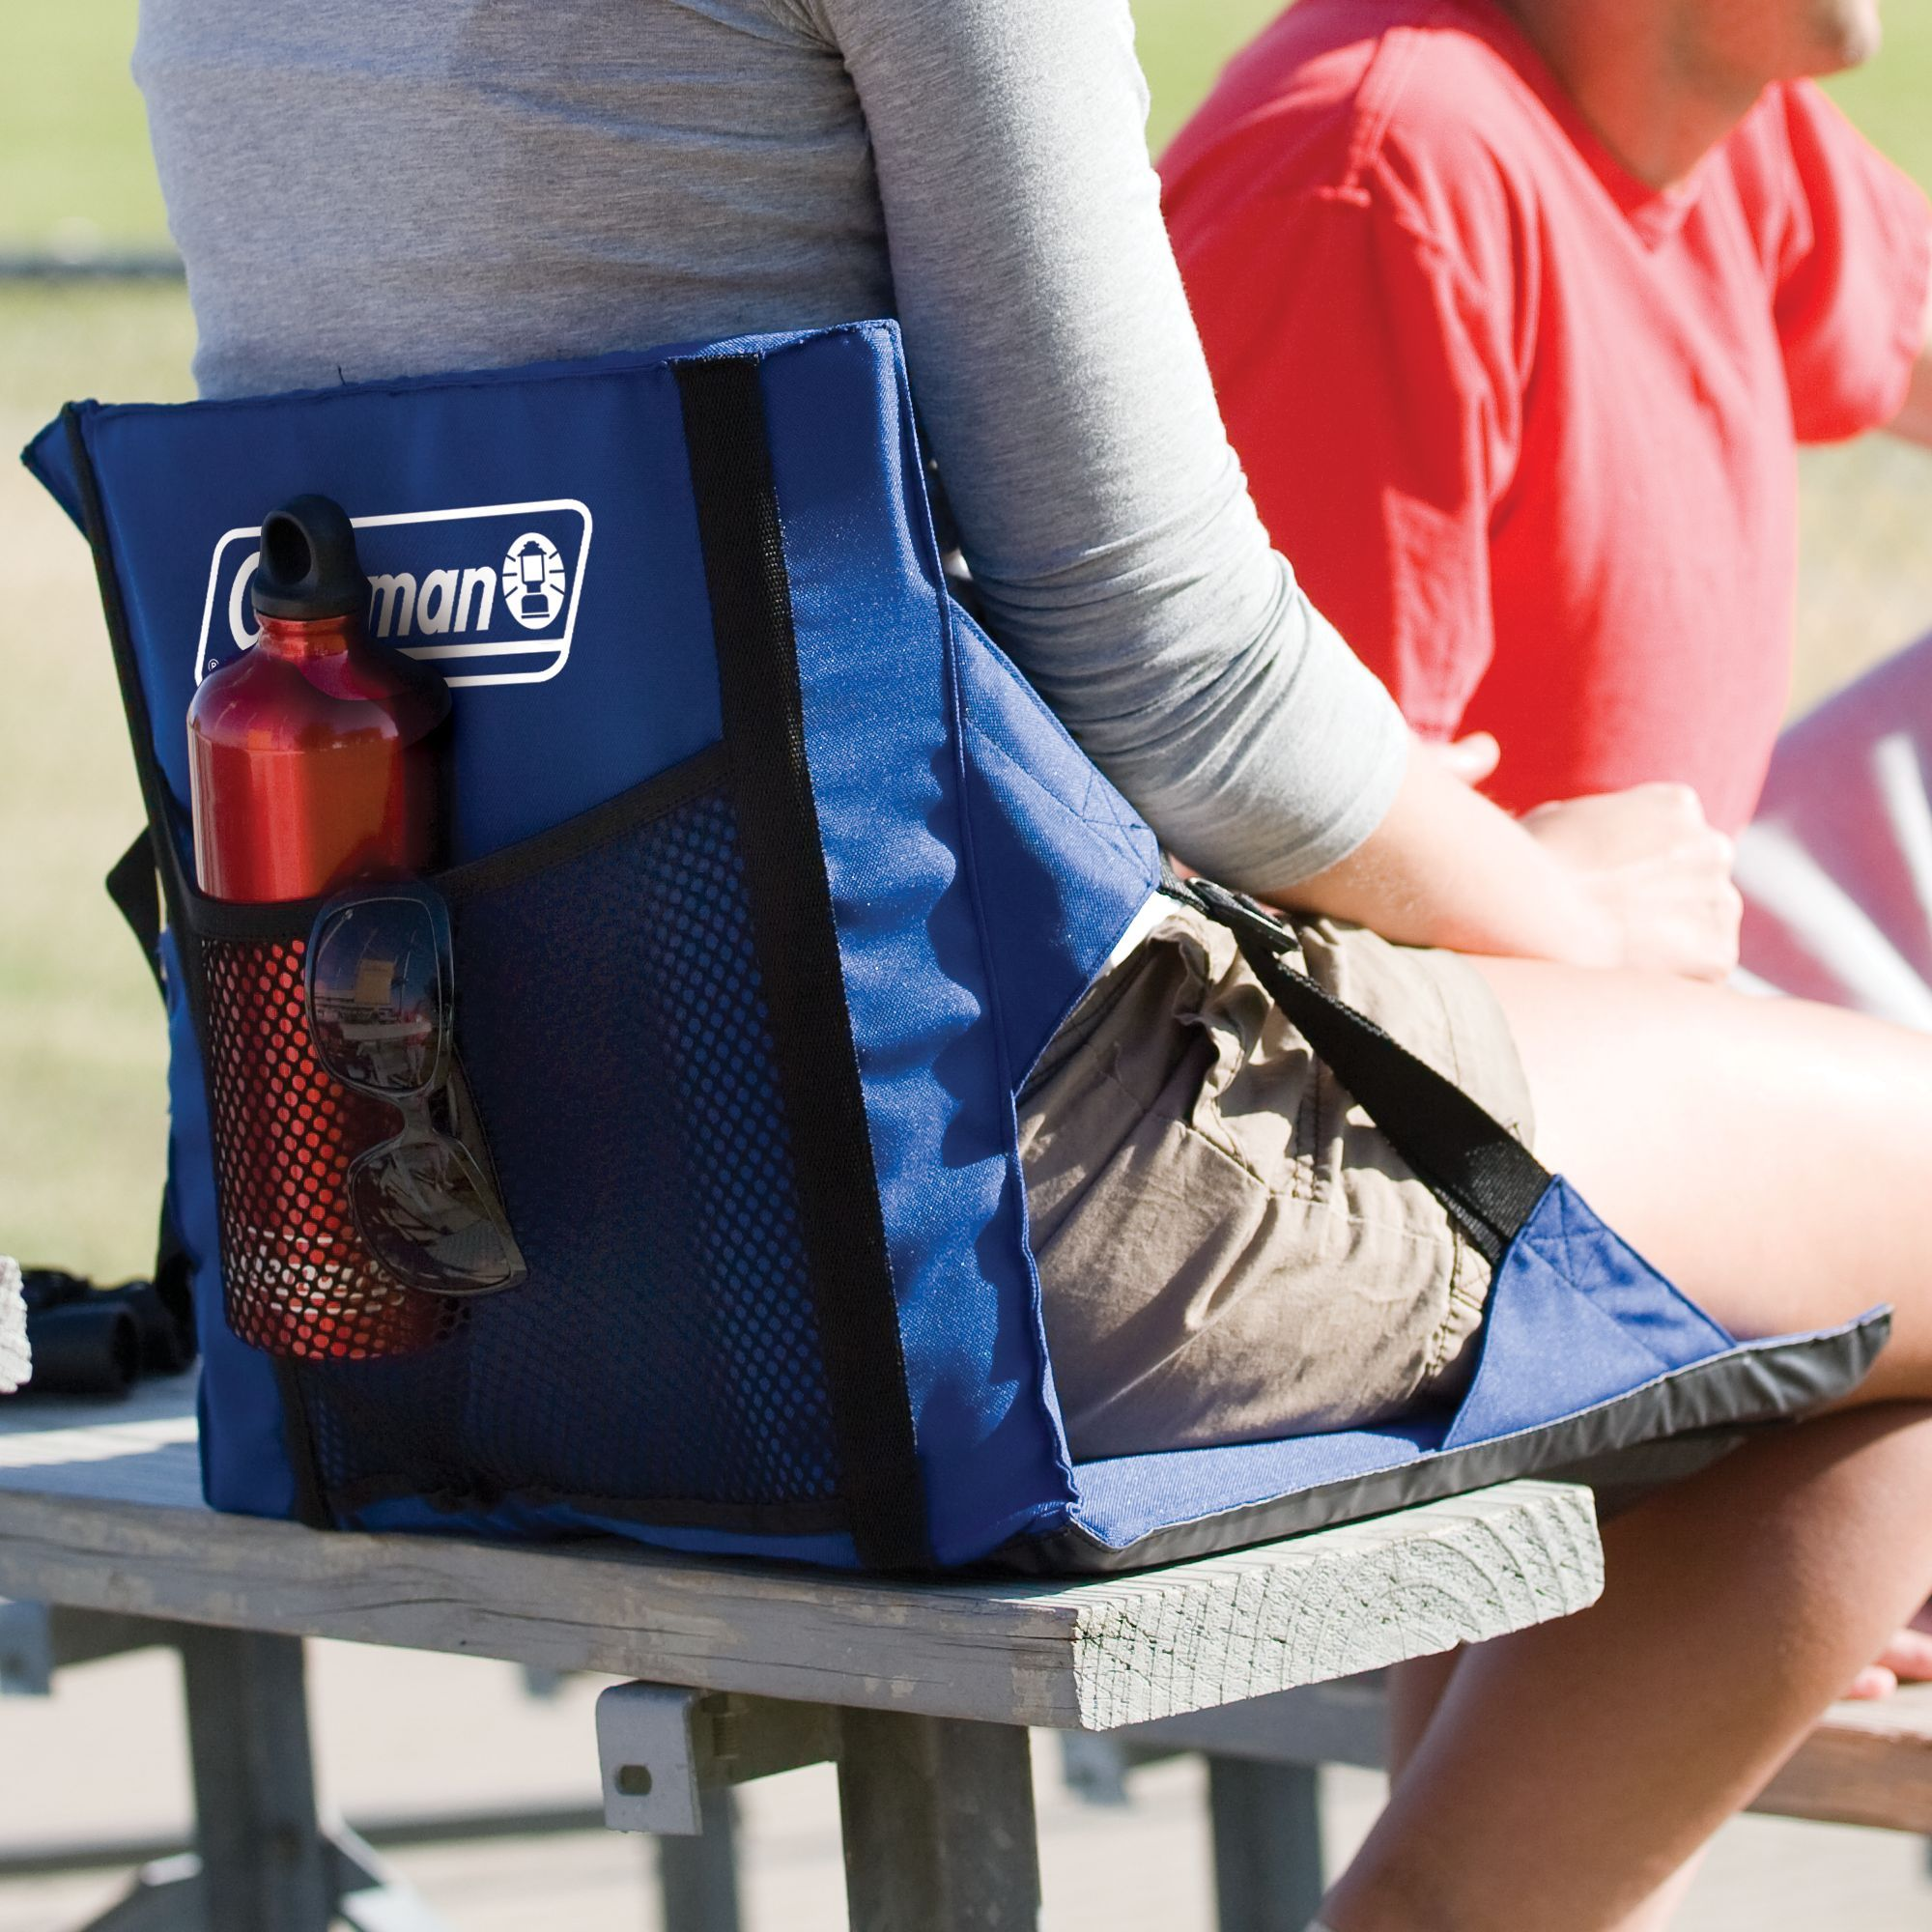 Bring comfort with you to the game or concert when you